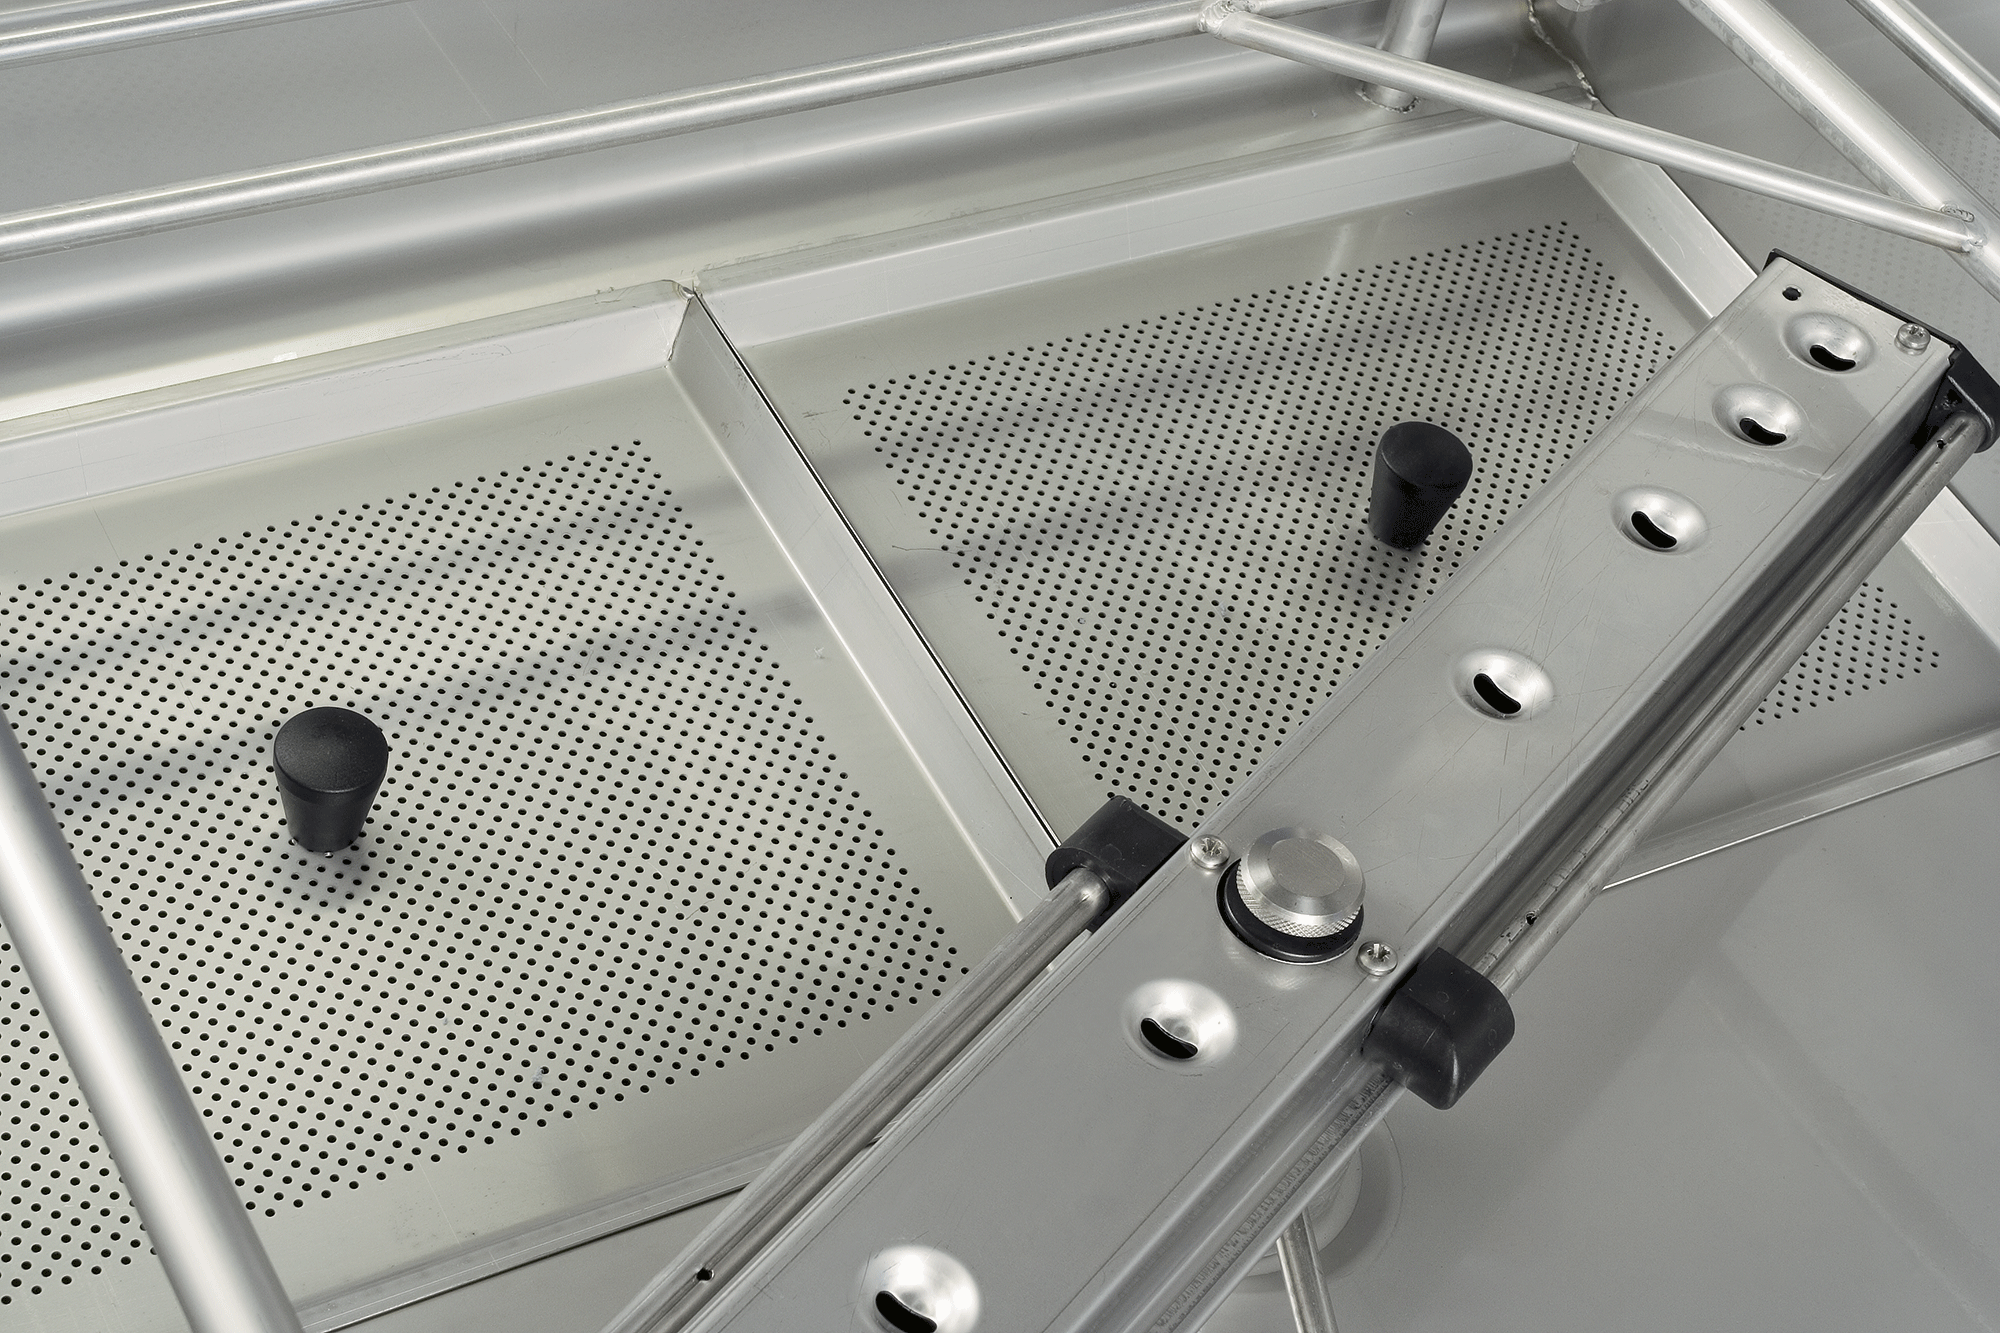 Stainless-stell strainers